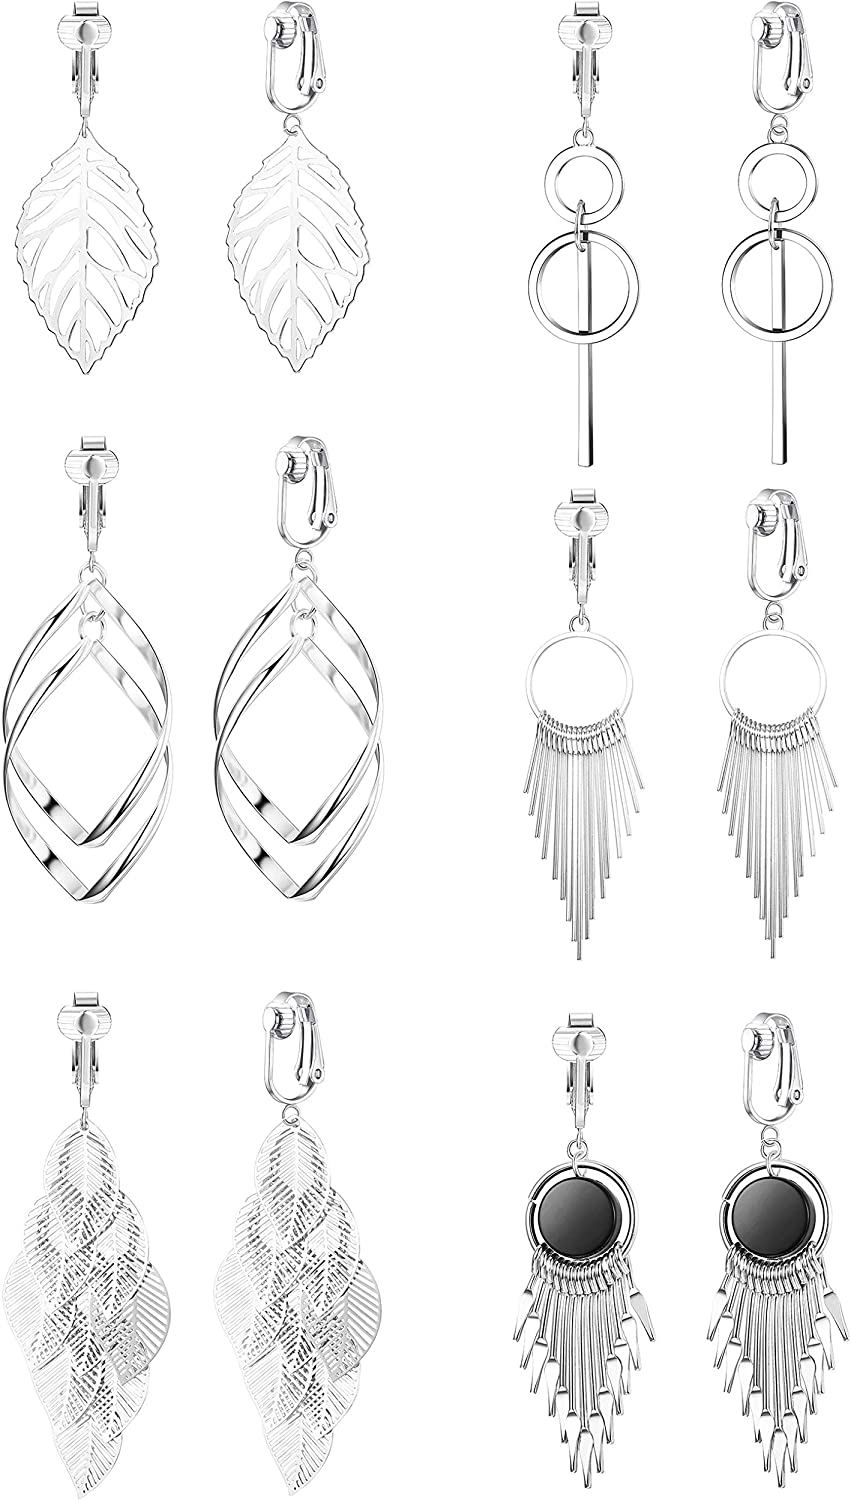 SAILIMUE 6Pairs Clip on Earrings for Some reservation Fashion Women Dangle E Drop Ranking integrated 1st place